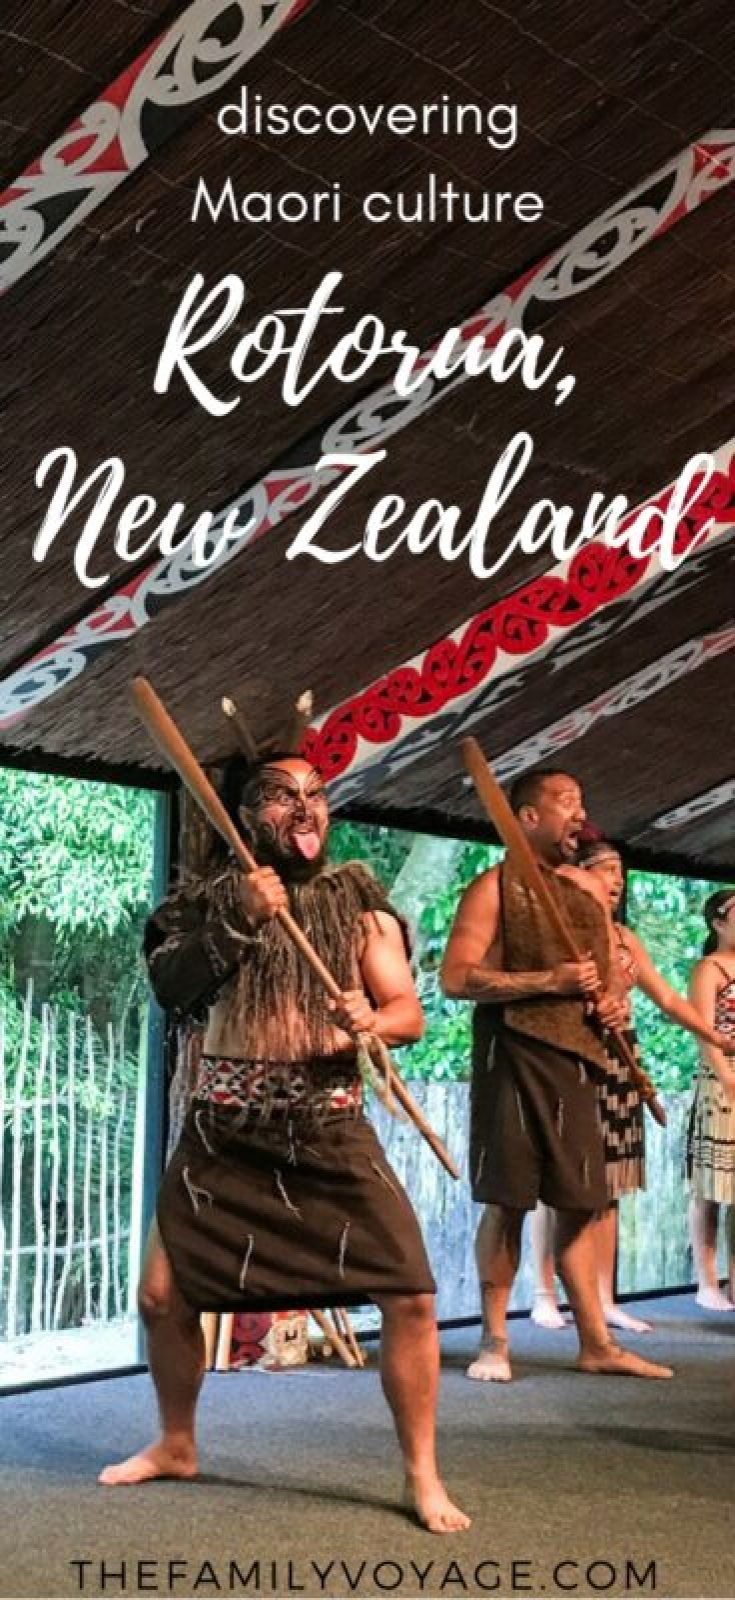 Have you ever wondered how to perform the traditional Maori haka? Or why Maori have face tattoos? Come to Tamaki Maori Village in Rotorua, New Zealand to experience Maori culture first-hand. It's one of the best things to do in New Zealand and truly a unique experience. Click to find out why it should be at the top of your North Island itinerary. #NewZealand #travelplanning #familytravel #maori